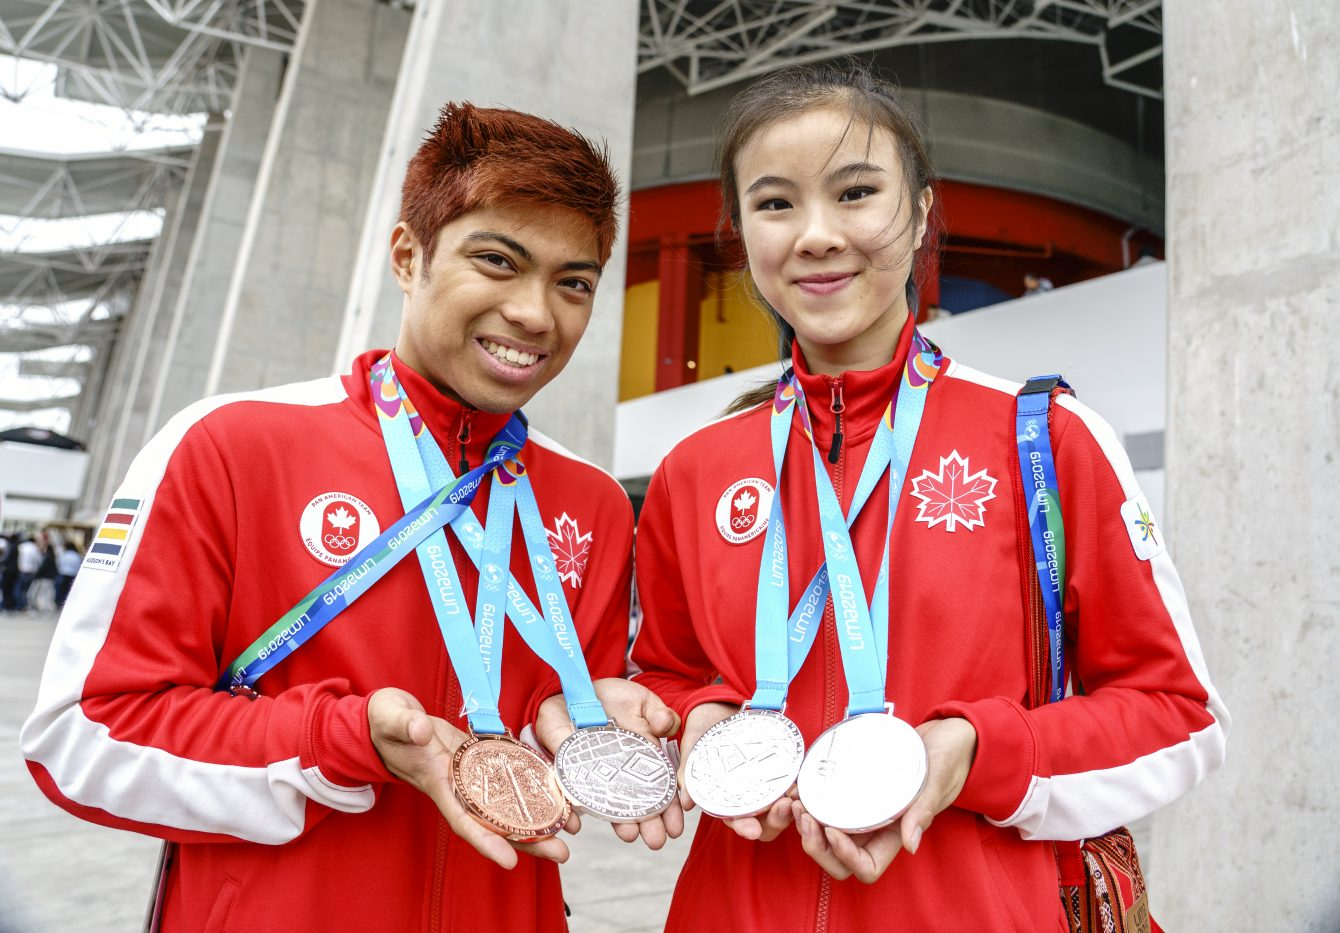 AJ Assadian (left) and Michelle Lee, pose for photos with their medals at Lima 2019.